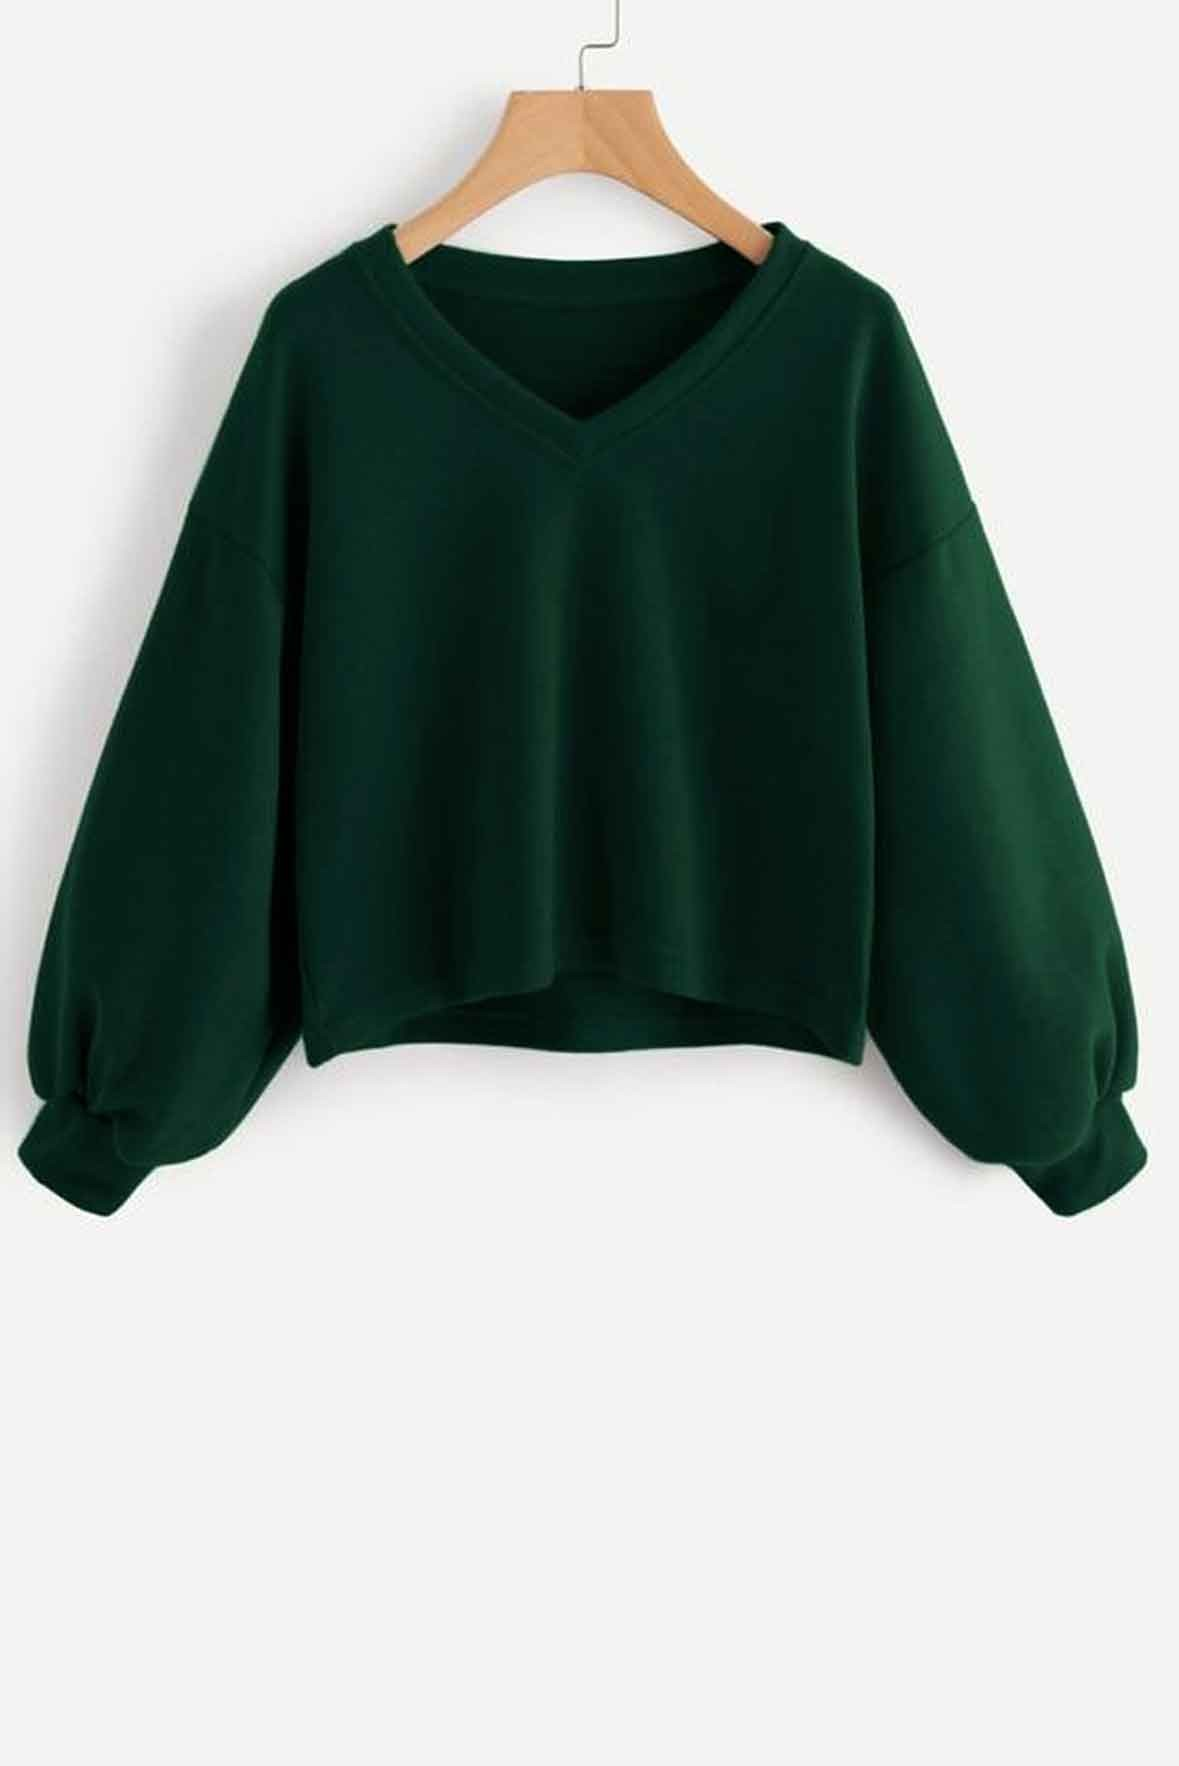 Solid Casual V neck Lantern Sleeve Sweatshirt Green